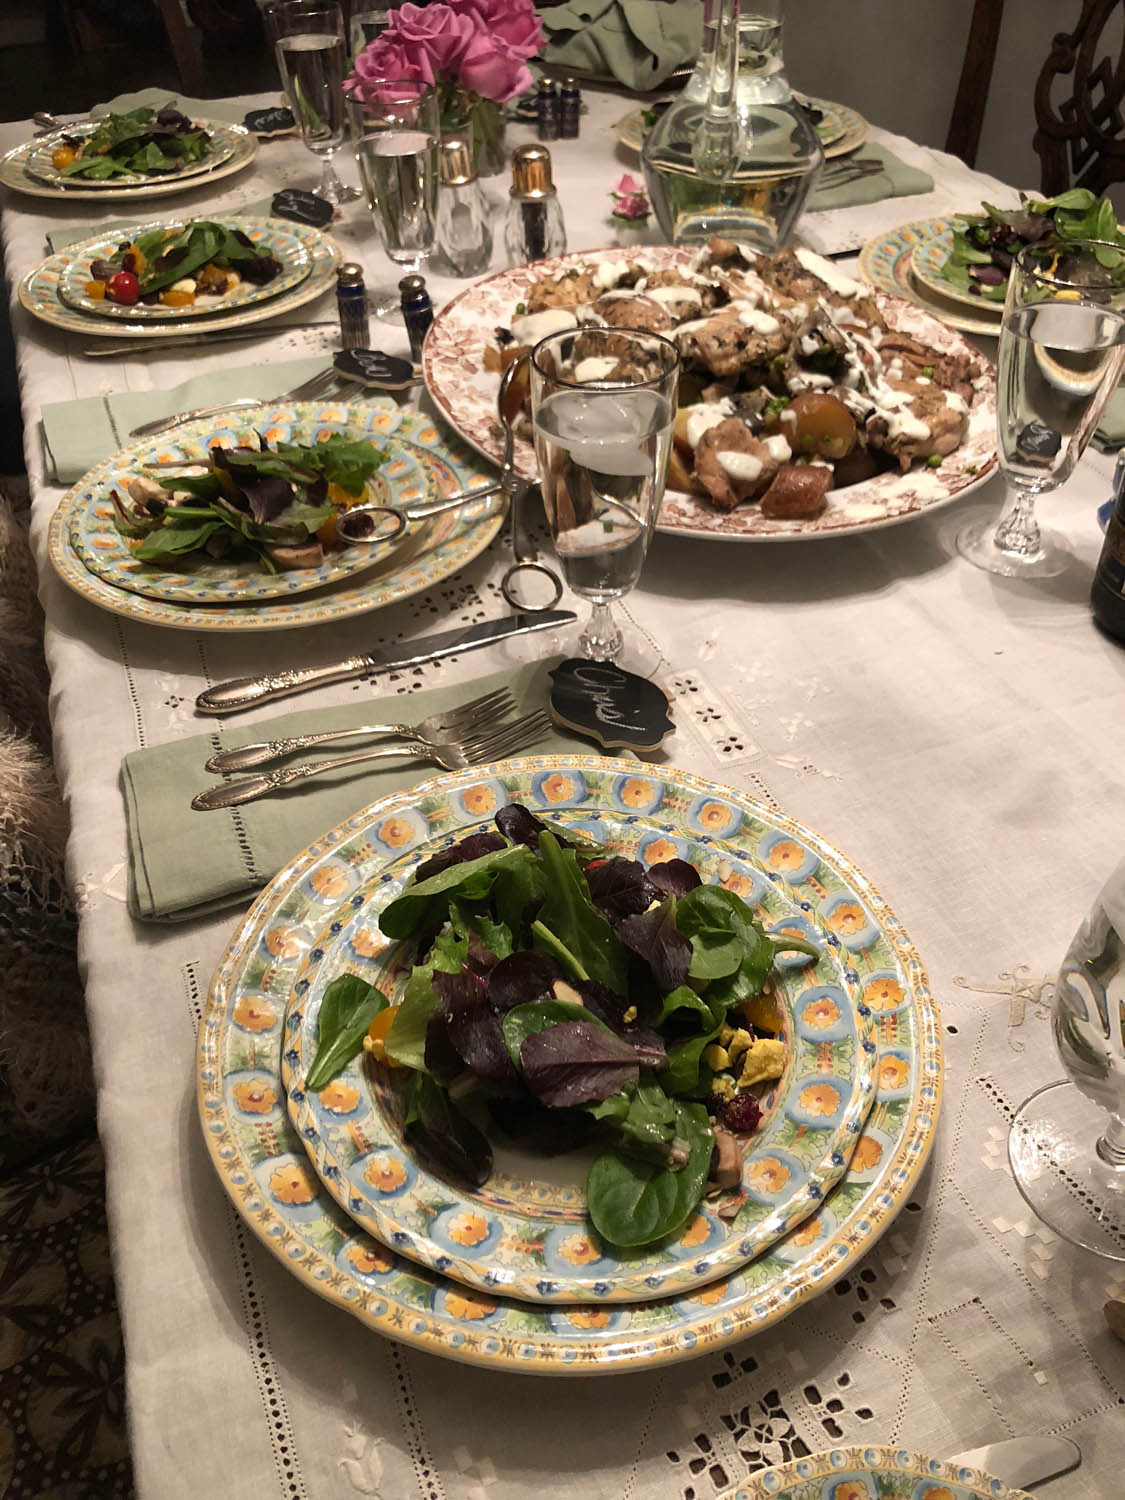 salads on fine china at a dining table for dinner party